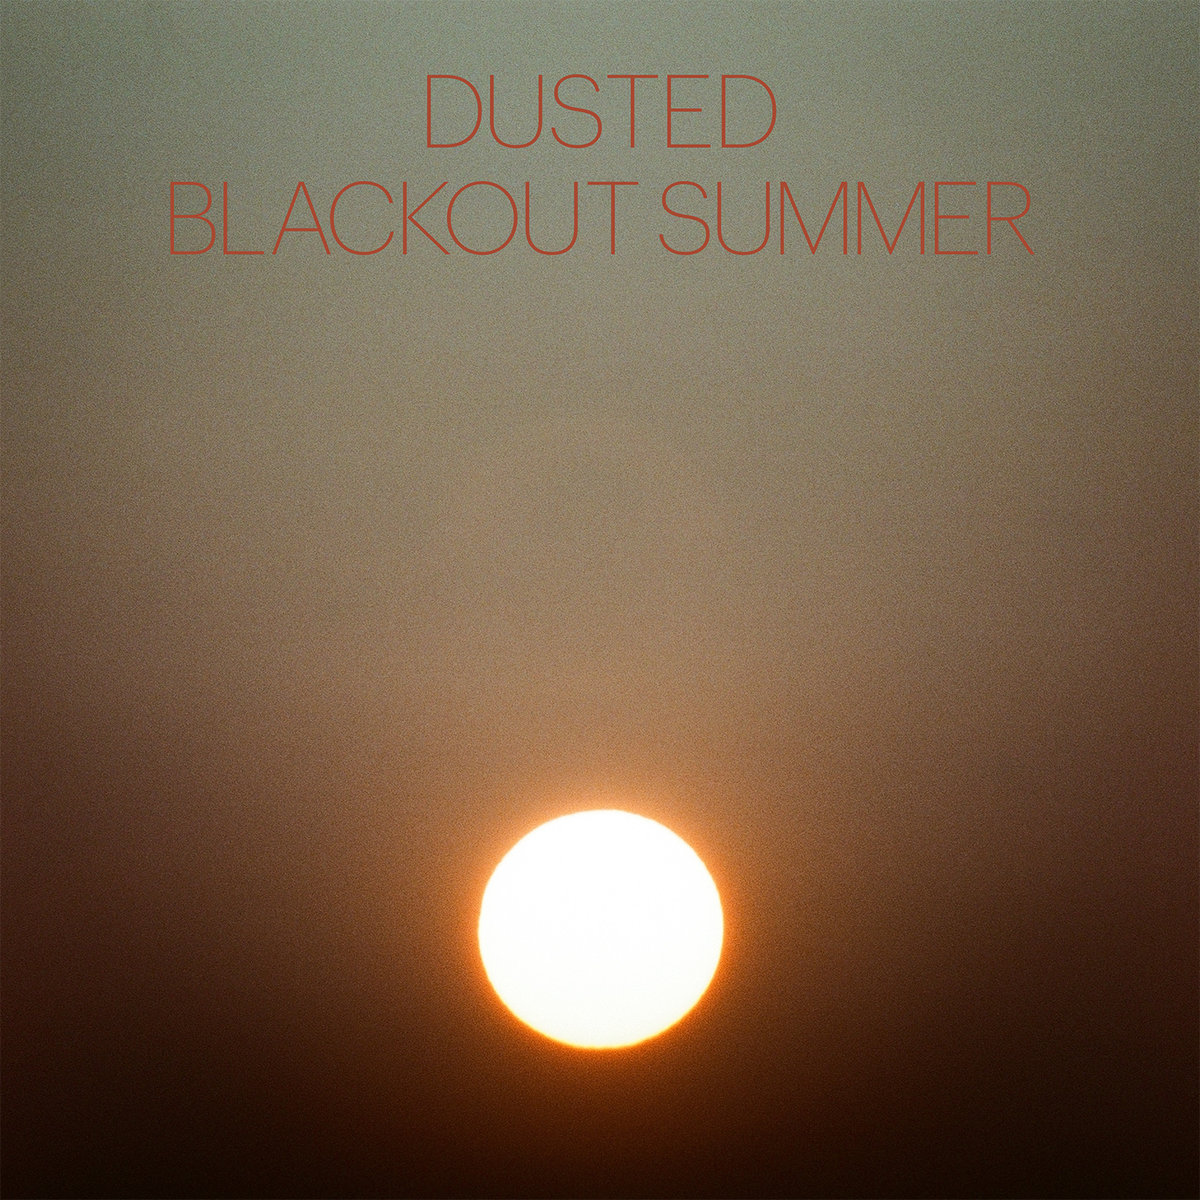 Dusted Blackout Summer